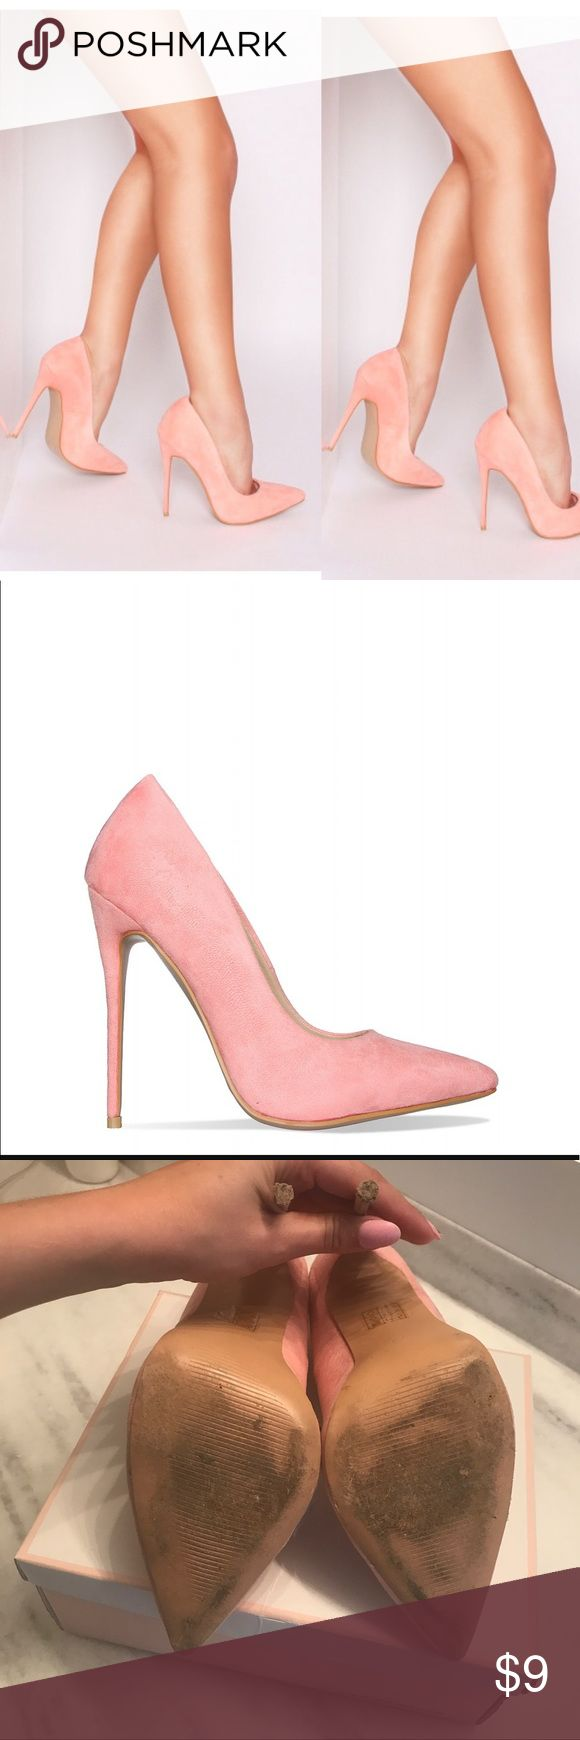 Simone Pink Suede Stiletto Court Heels From the office to a night out these stiletto court heels will show a sophisticated look. Featuring a point toe front and a killer stiletto. This wardrobe statement can be styled with a pair of denim mom jeans, a crop top with an oversized blazer.  Heel measures approximately 5 inches/ 12.7cm  Faux suede and leather upper  Fit true to size   US size 9 UK size 7 SIMMI LONDON Shoes Heels